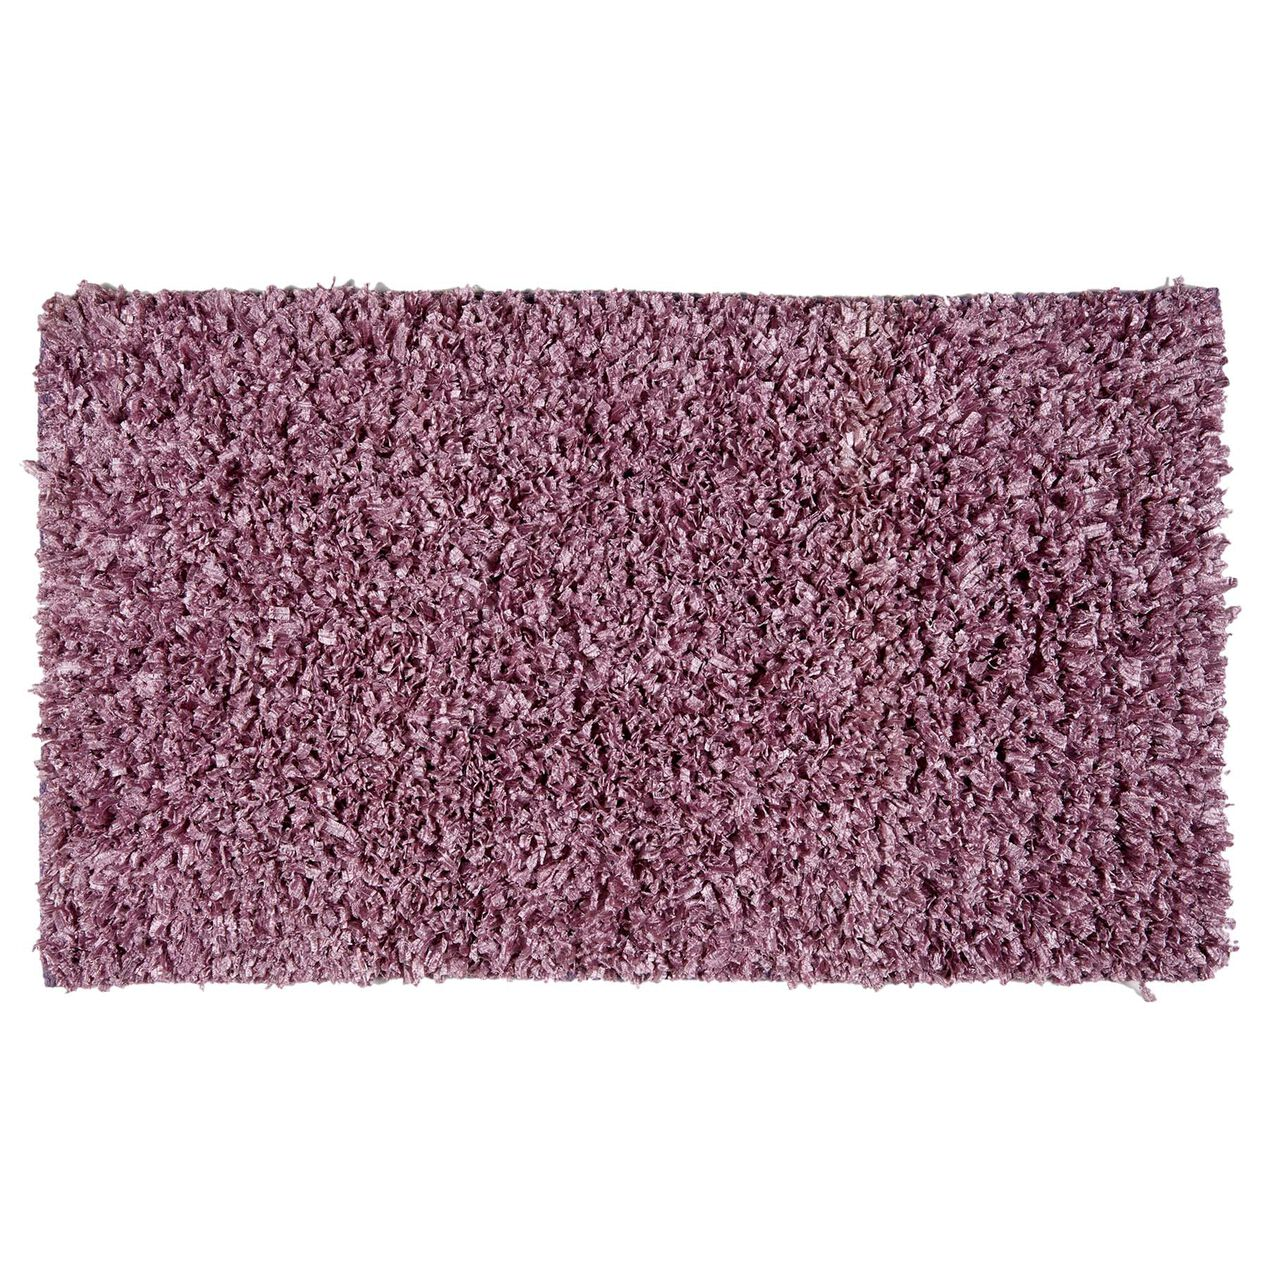 Purple Shiny Fur Shag Accent Rug 27 X 45-in